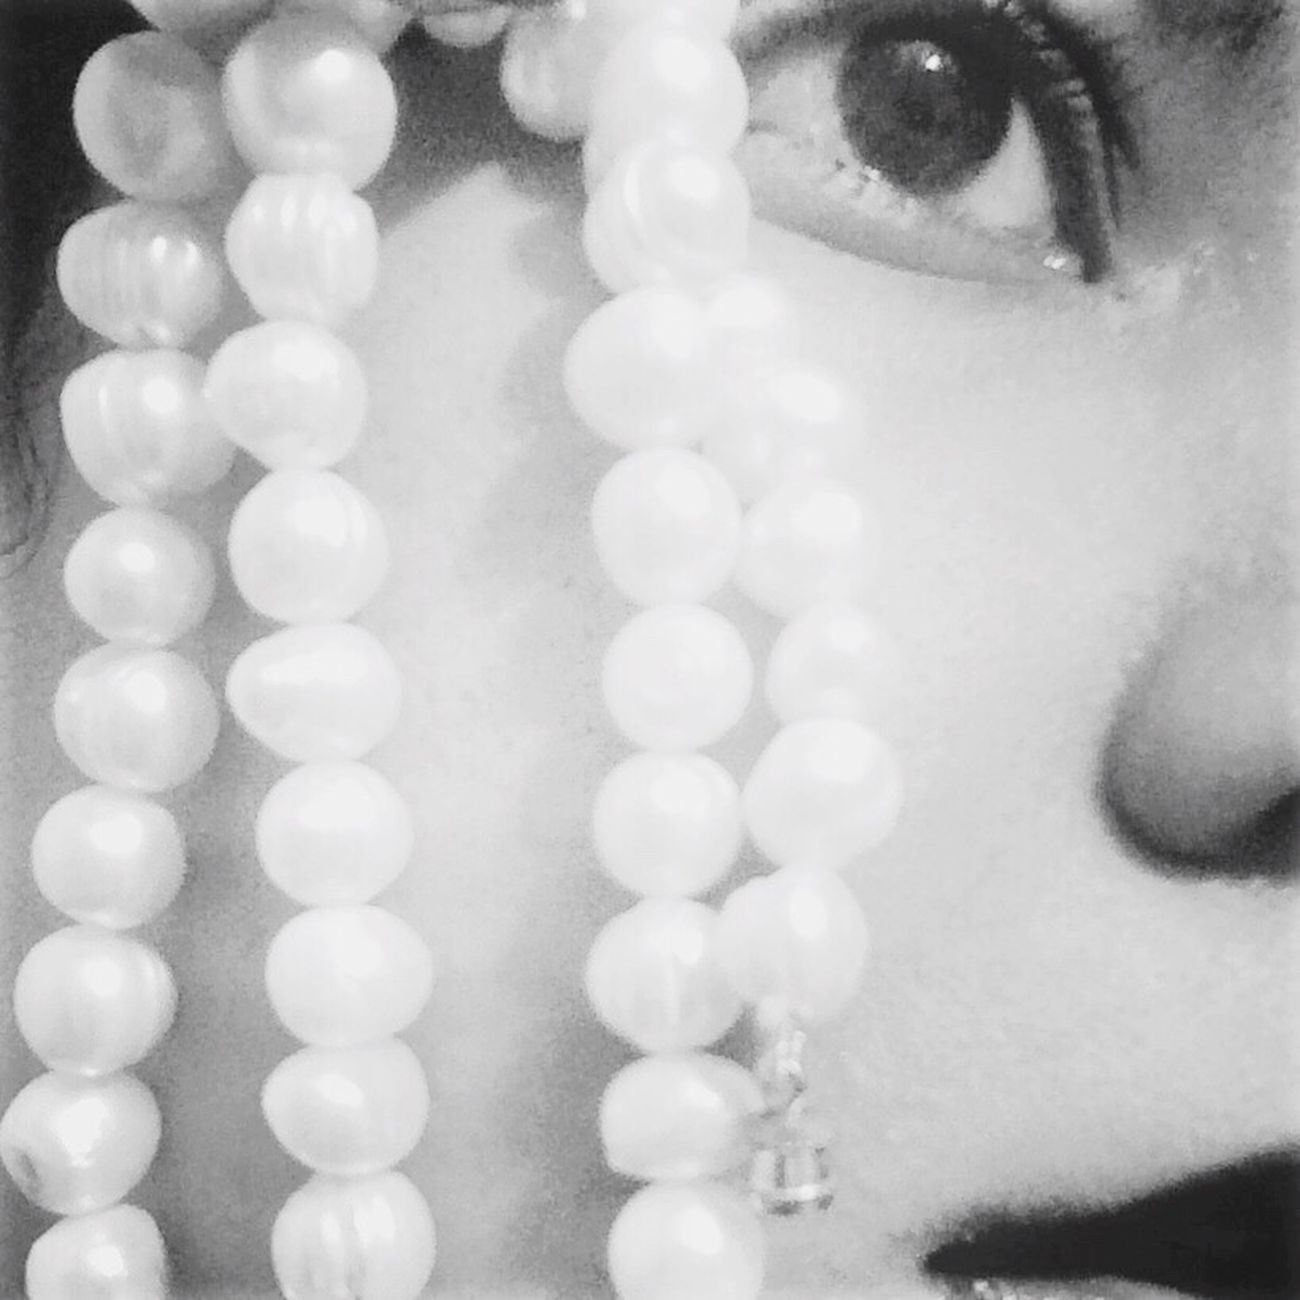 All that glitters Blackandwhite Shiny Pearls Self Portrait Past